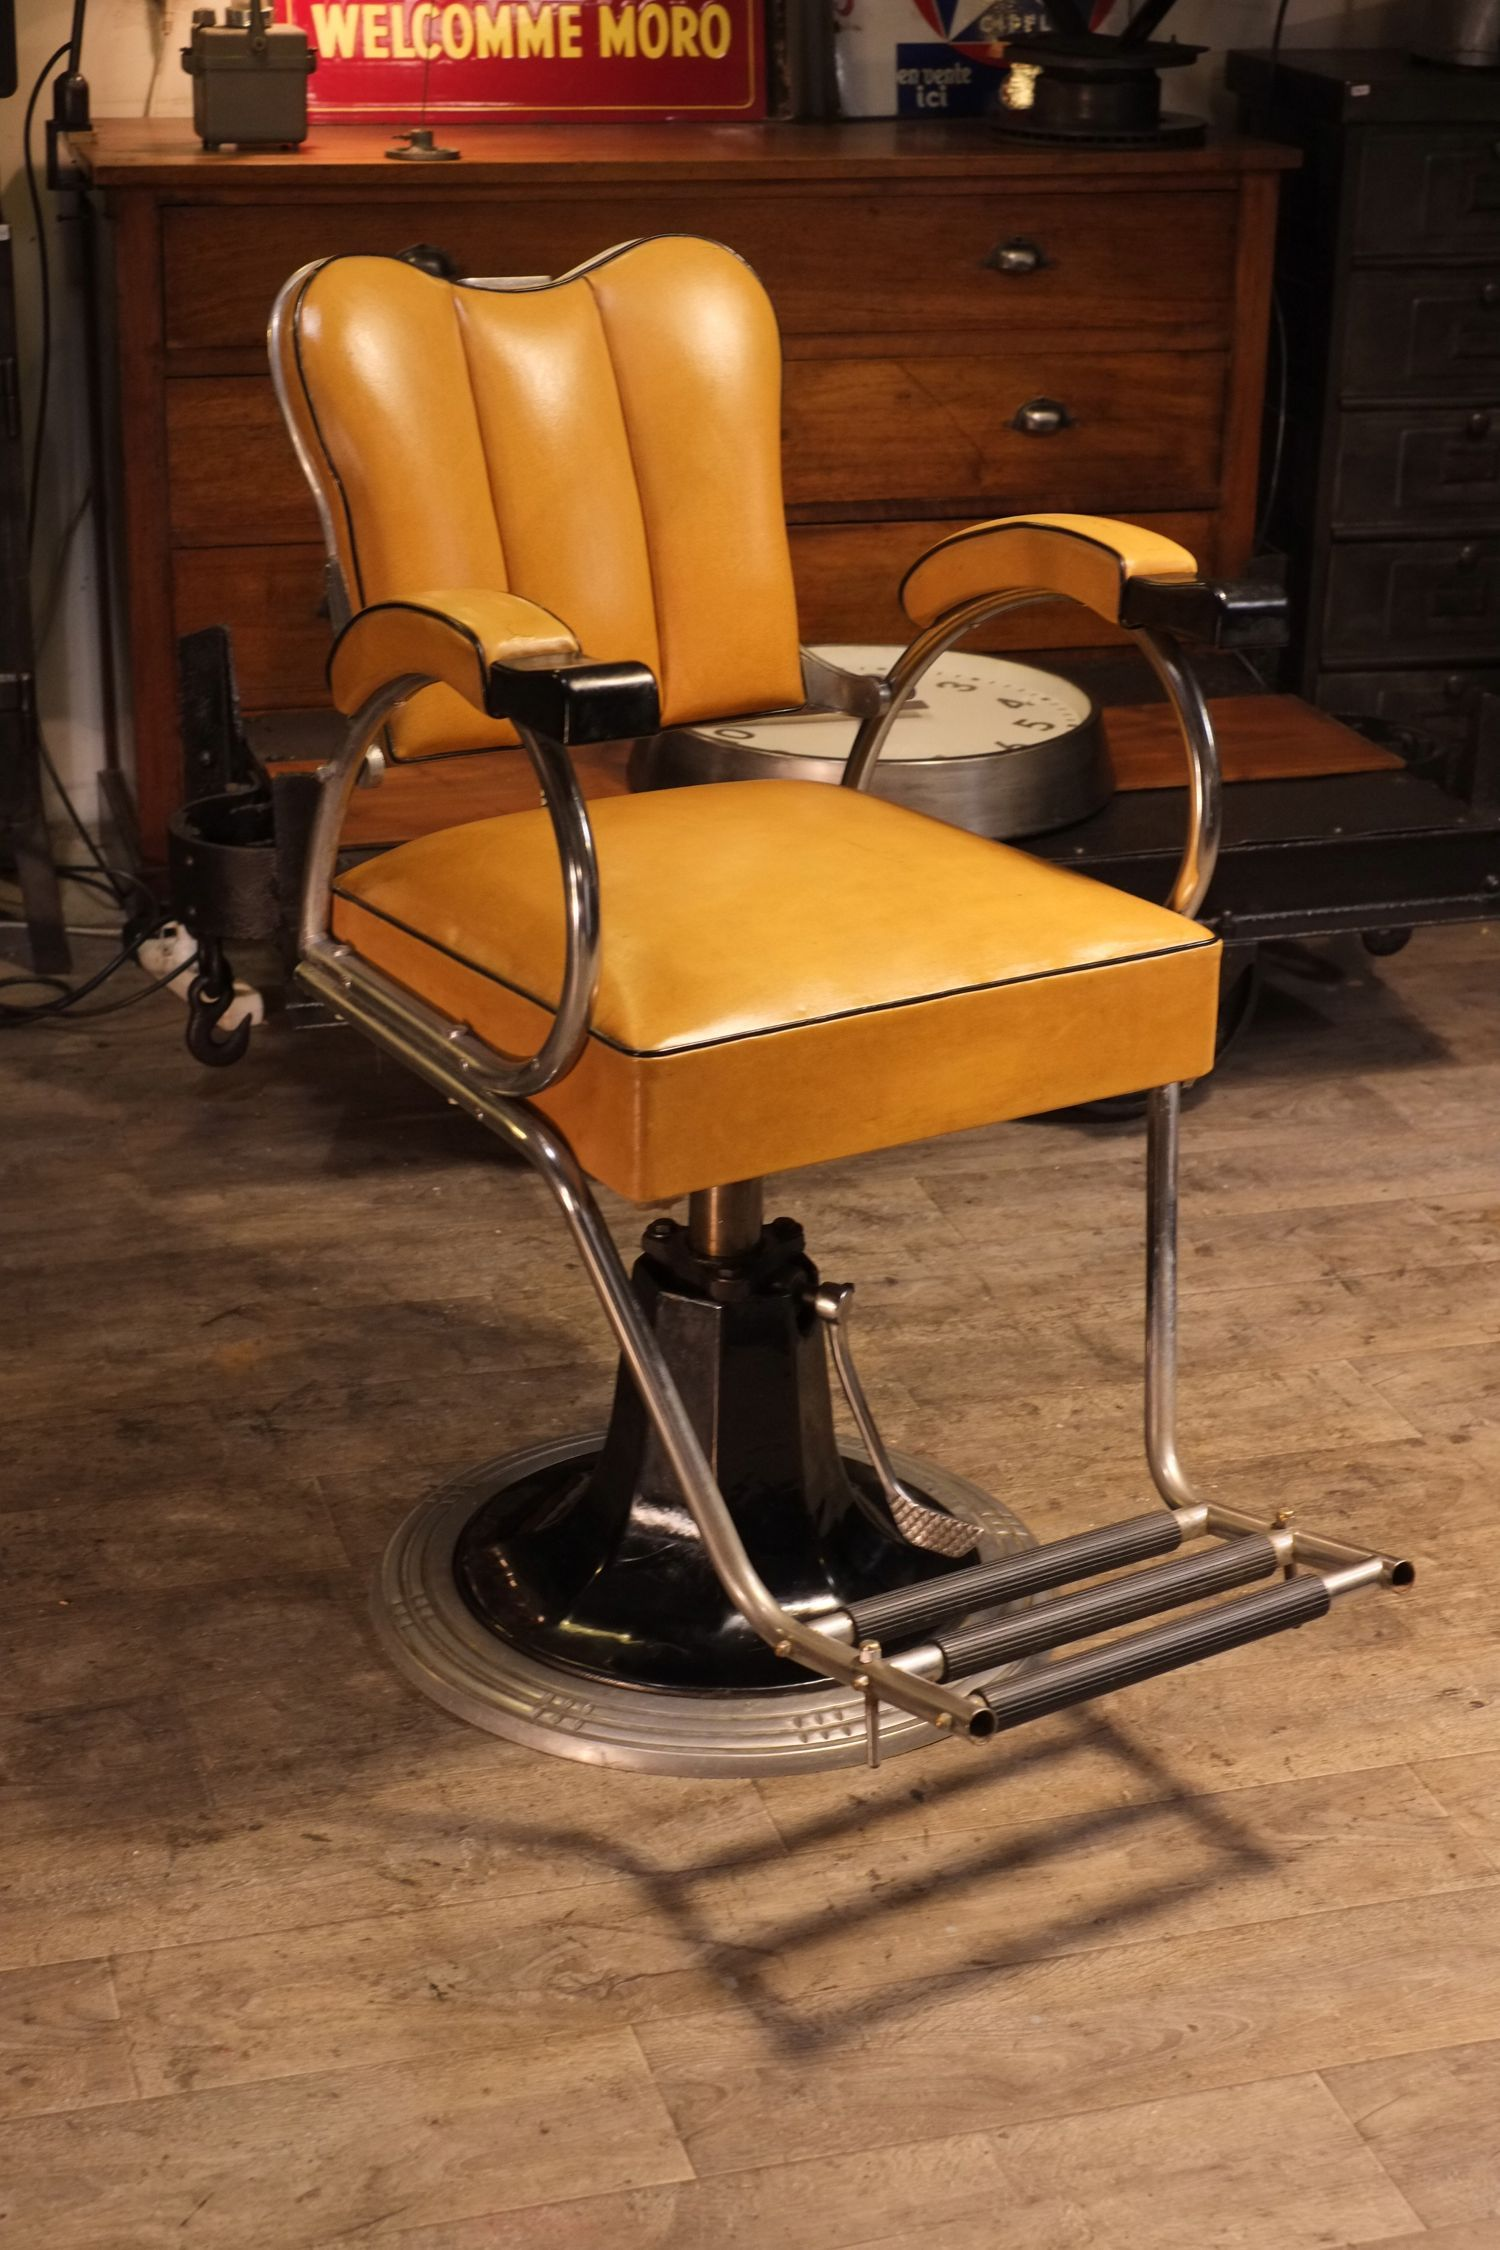 fauteuil de barbier 1950 stoelen pinterest industrial retro furniture and industrial style. Black Bedroom Furniture Sets. Home Design Ideas